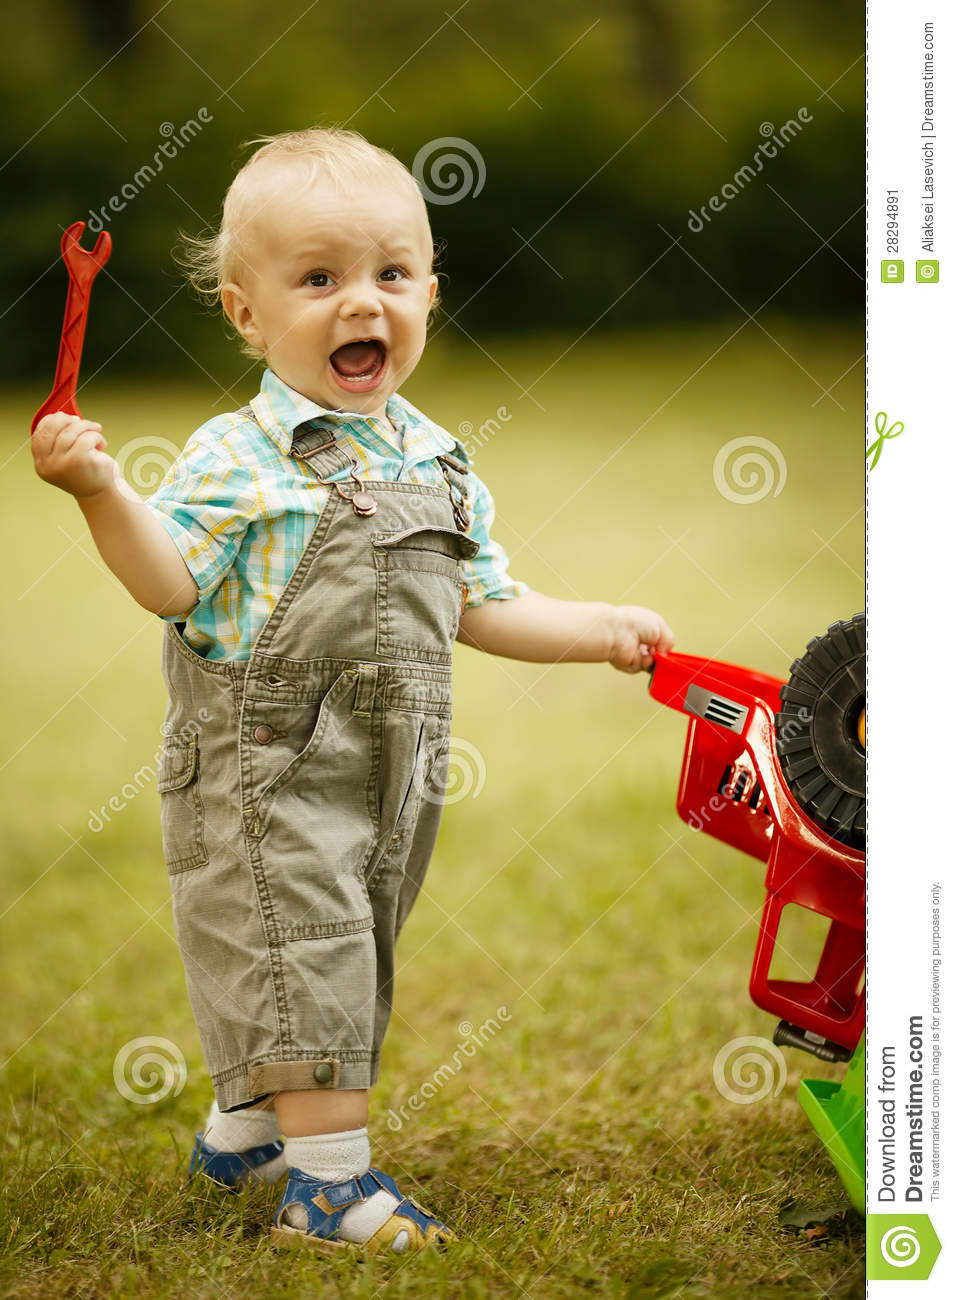 Little Boy With Toy Car : Little boy repairs toy car stock image